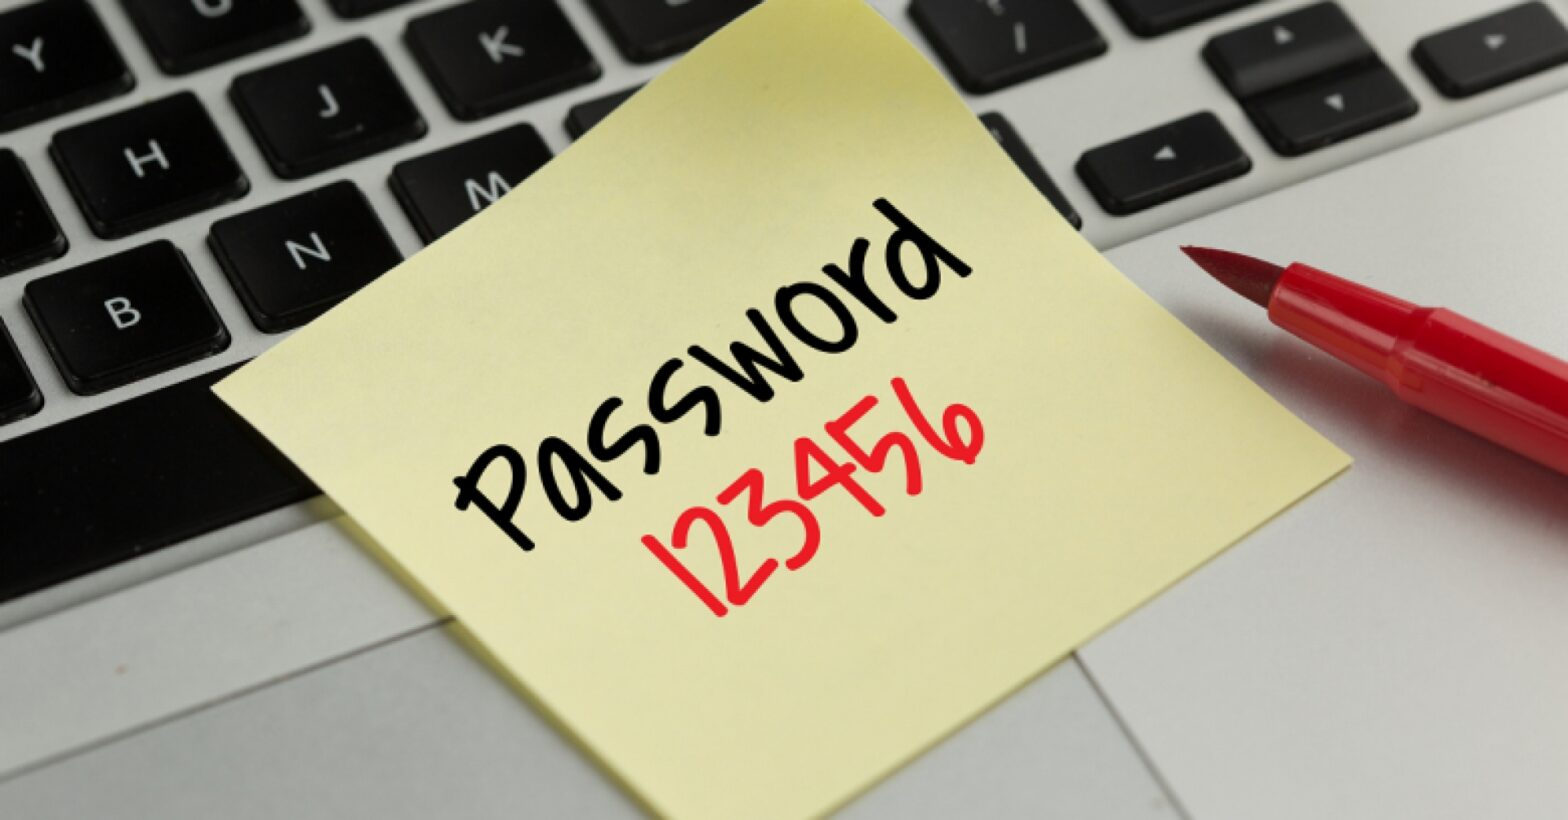 4 Passwords You Should Never Use